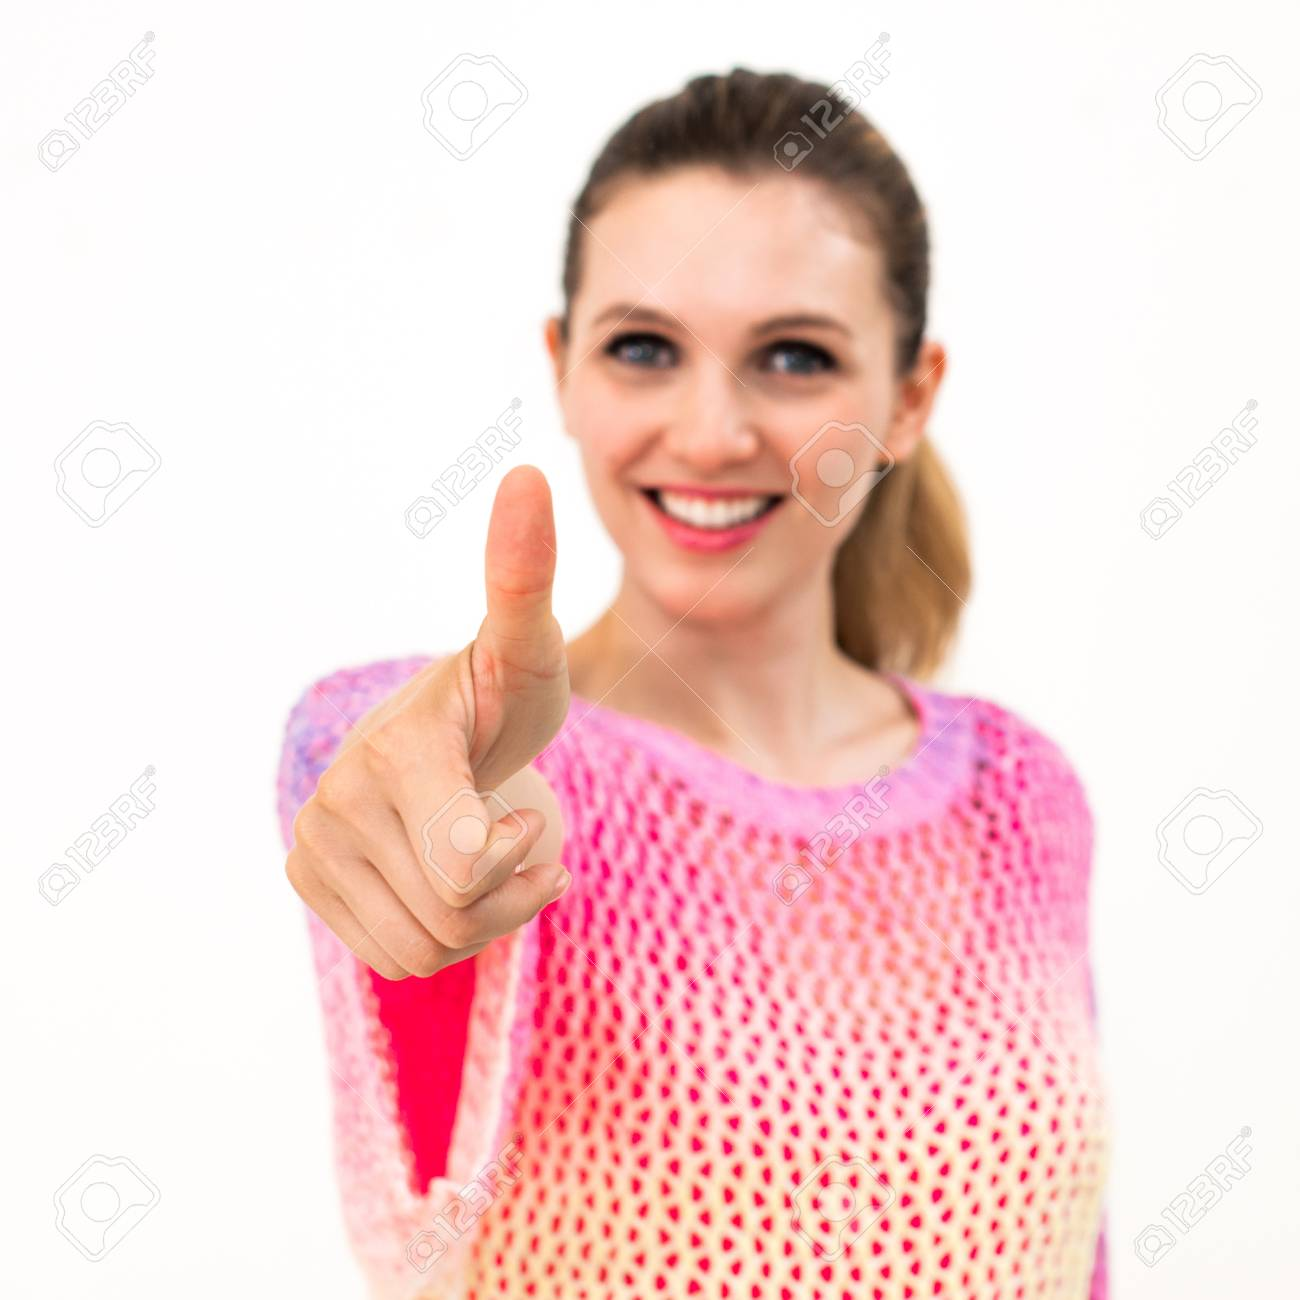 young smiling woman thumb as a sign of approval on the white background Stock Photo - 20336603